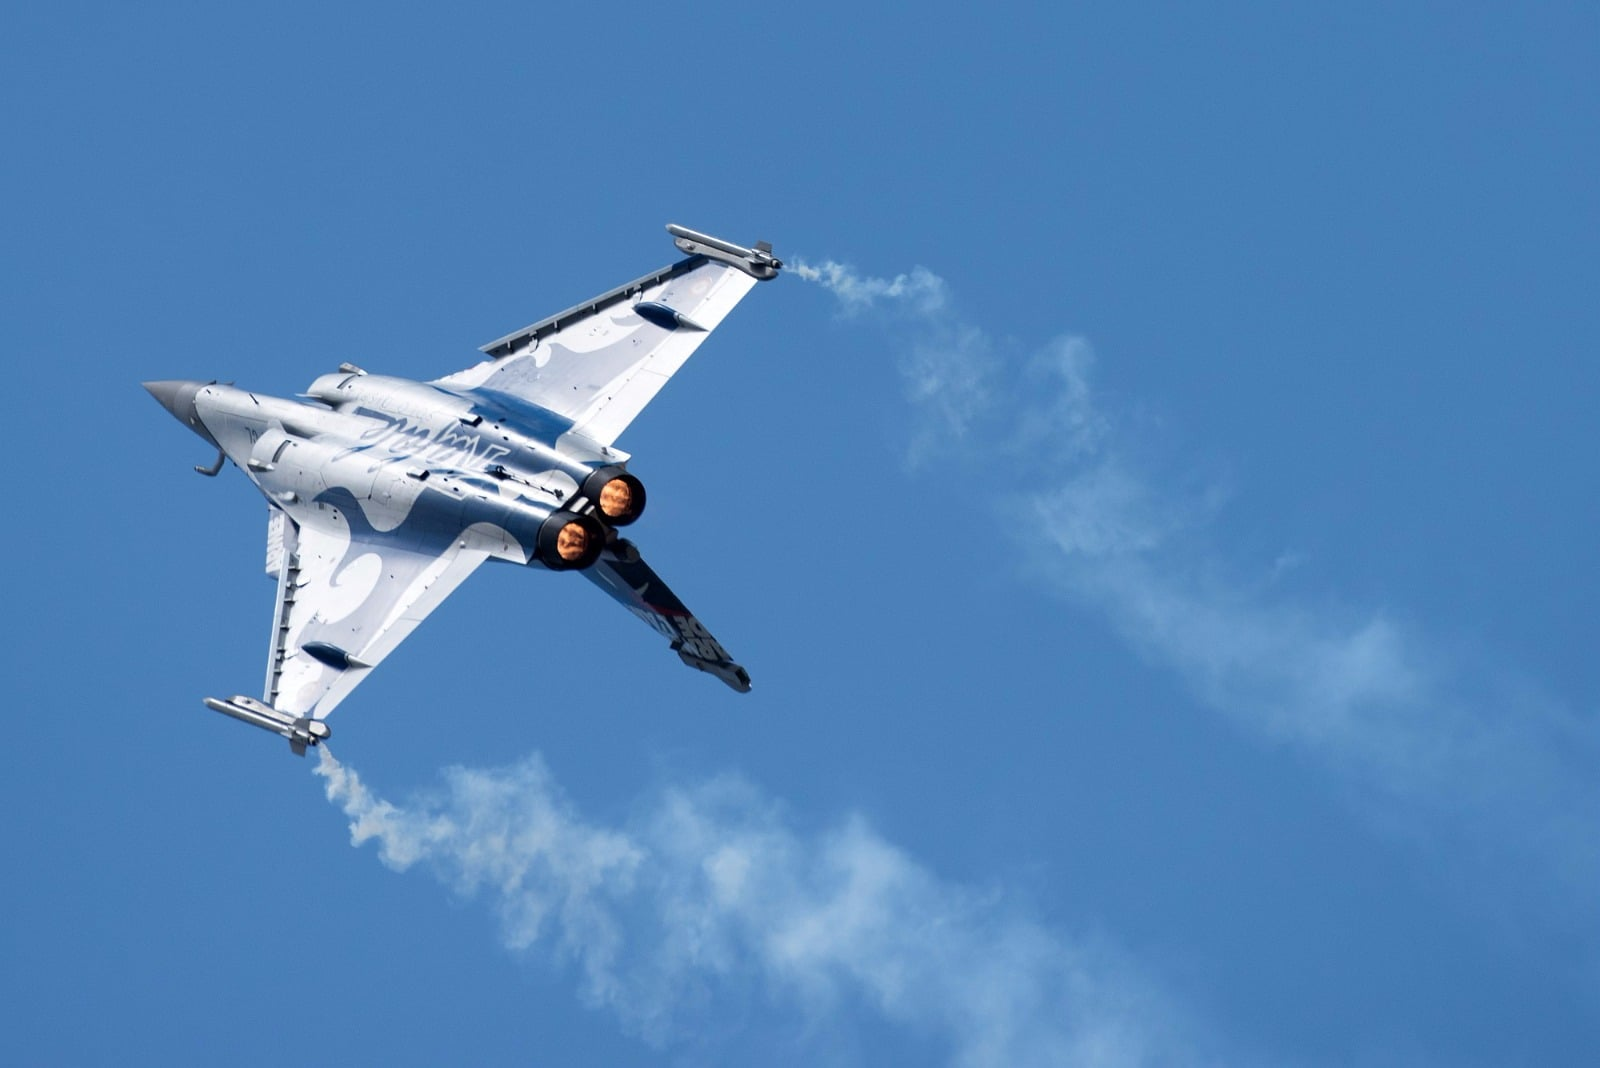 Mission Alert >> The Rafale, the latest Dassault Aviation combat aircraft: introduction